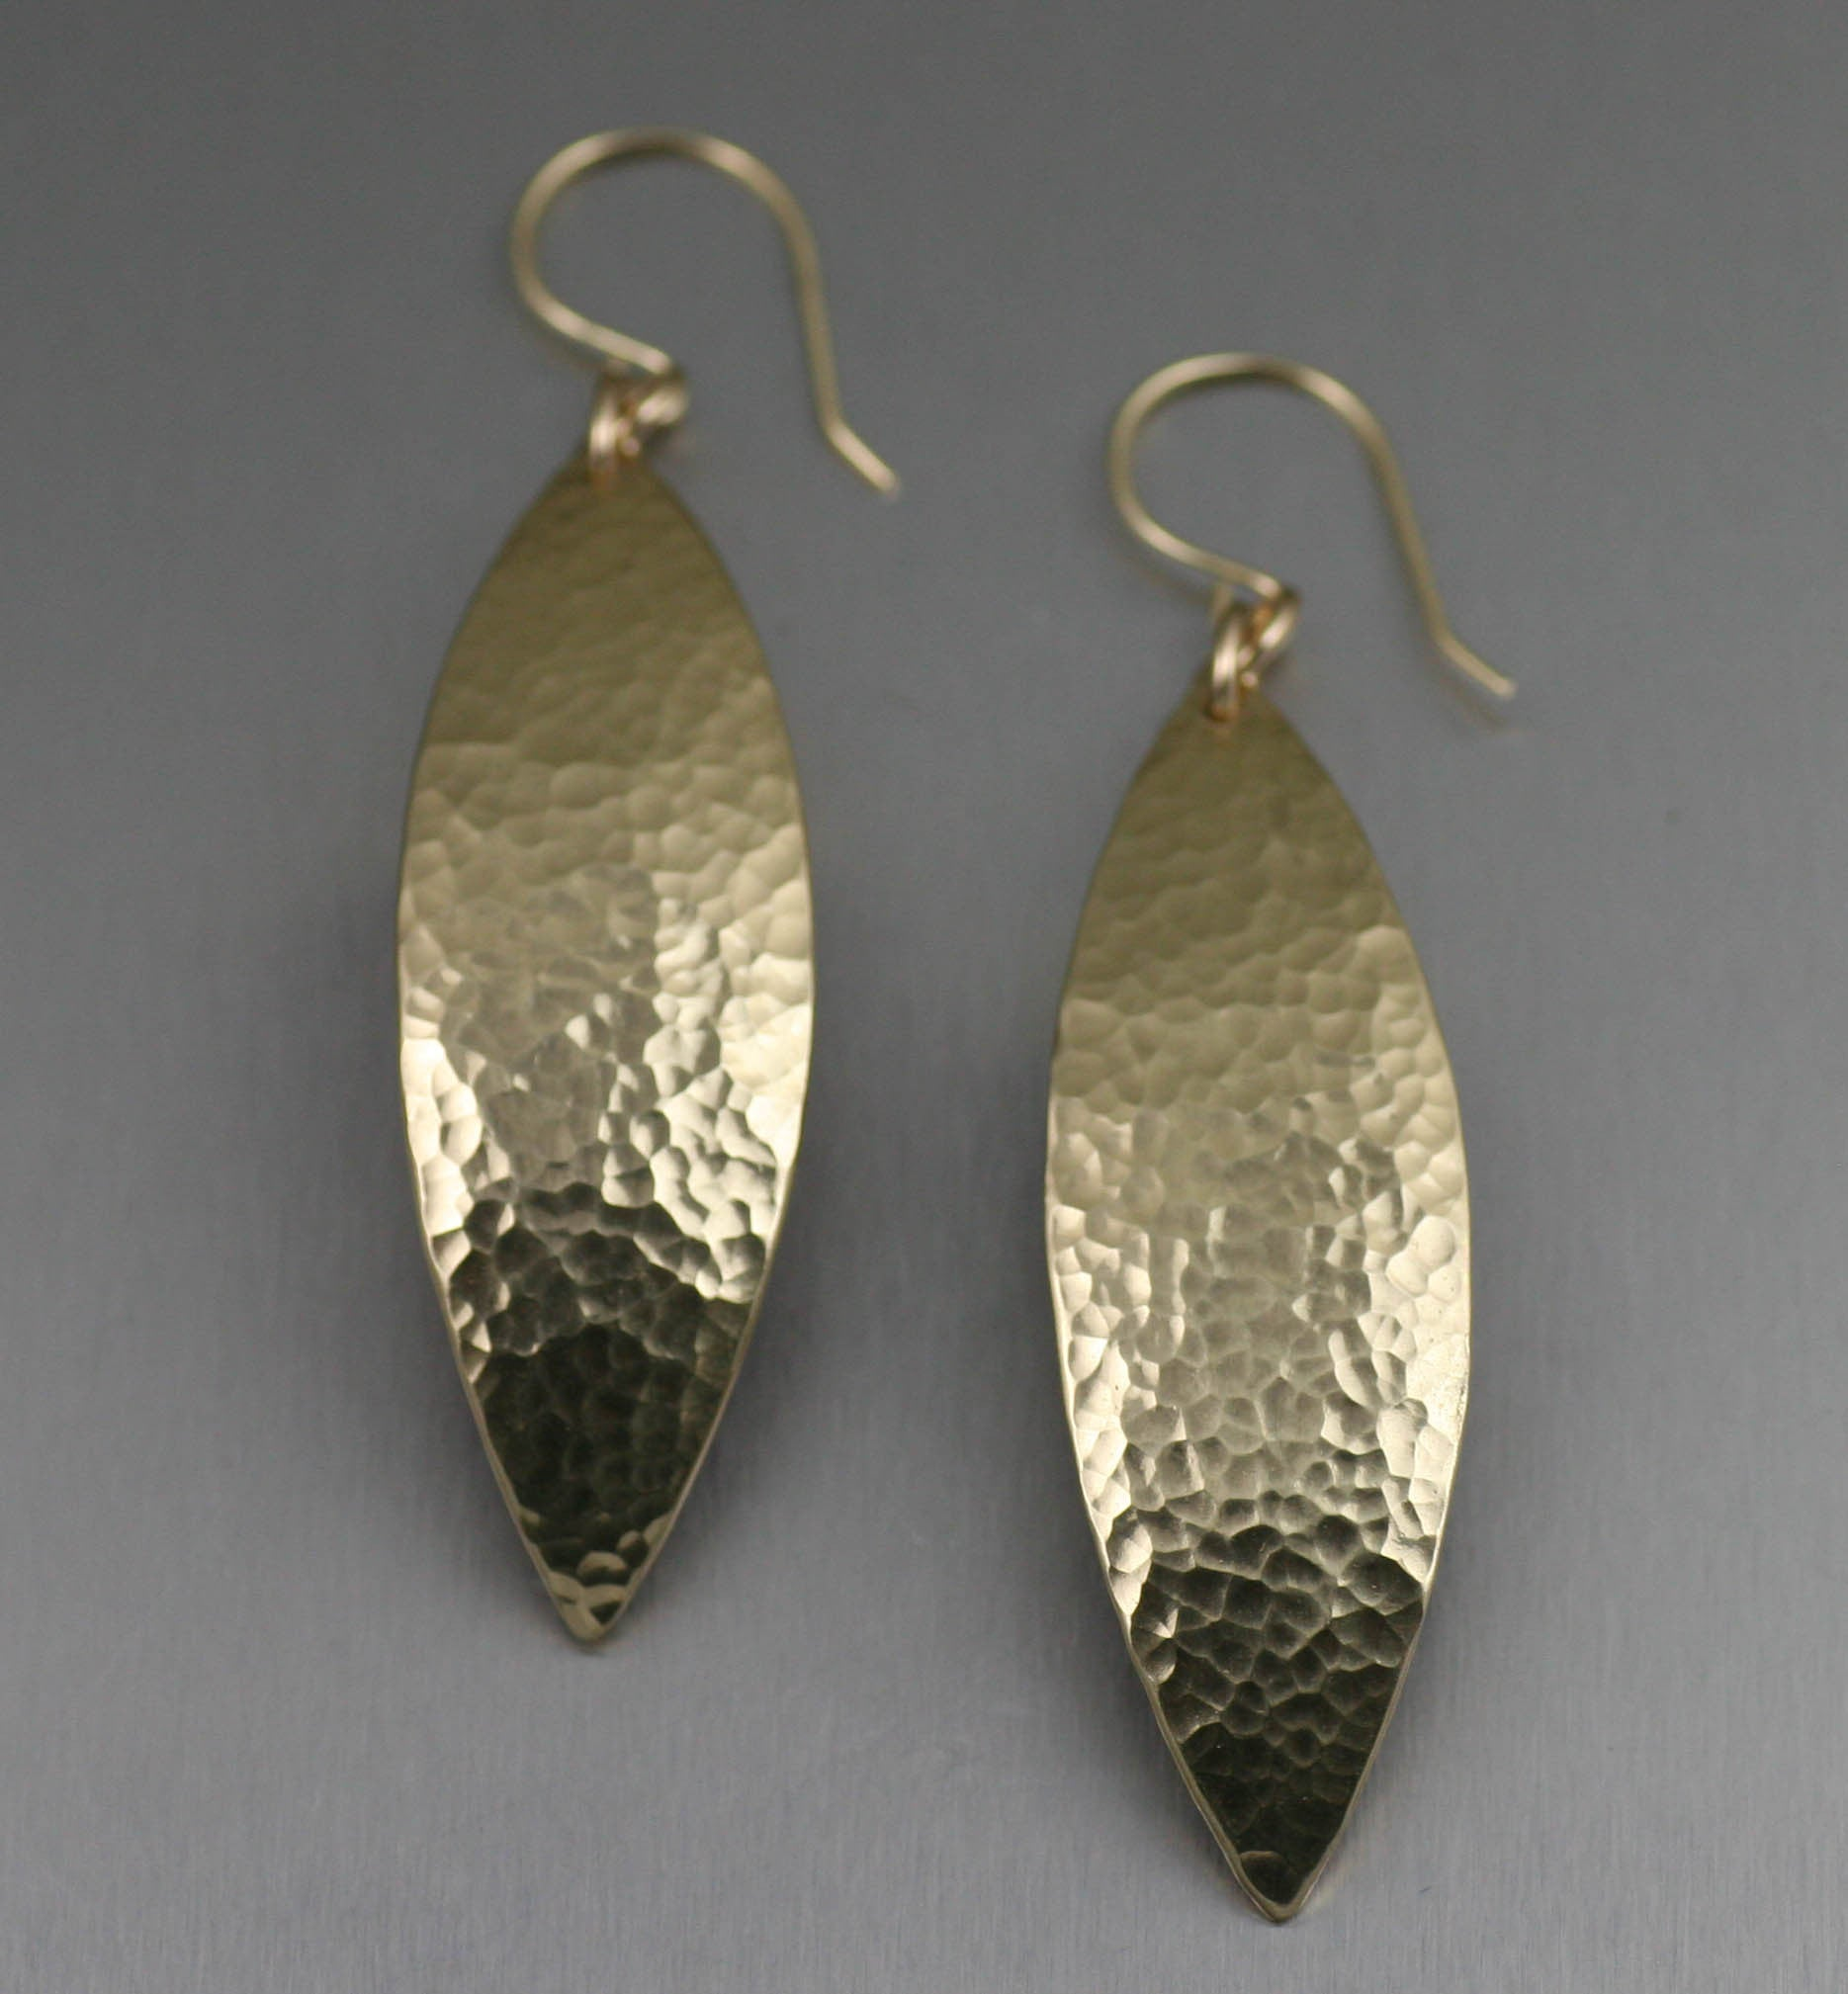 60% OFF Hammered Nu Gold Leaf Earrings NOW Through 10/31/15 on Amazon